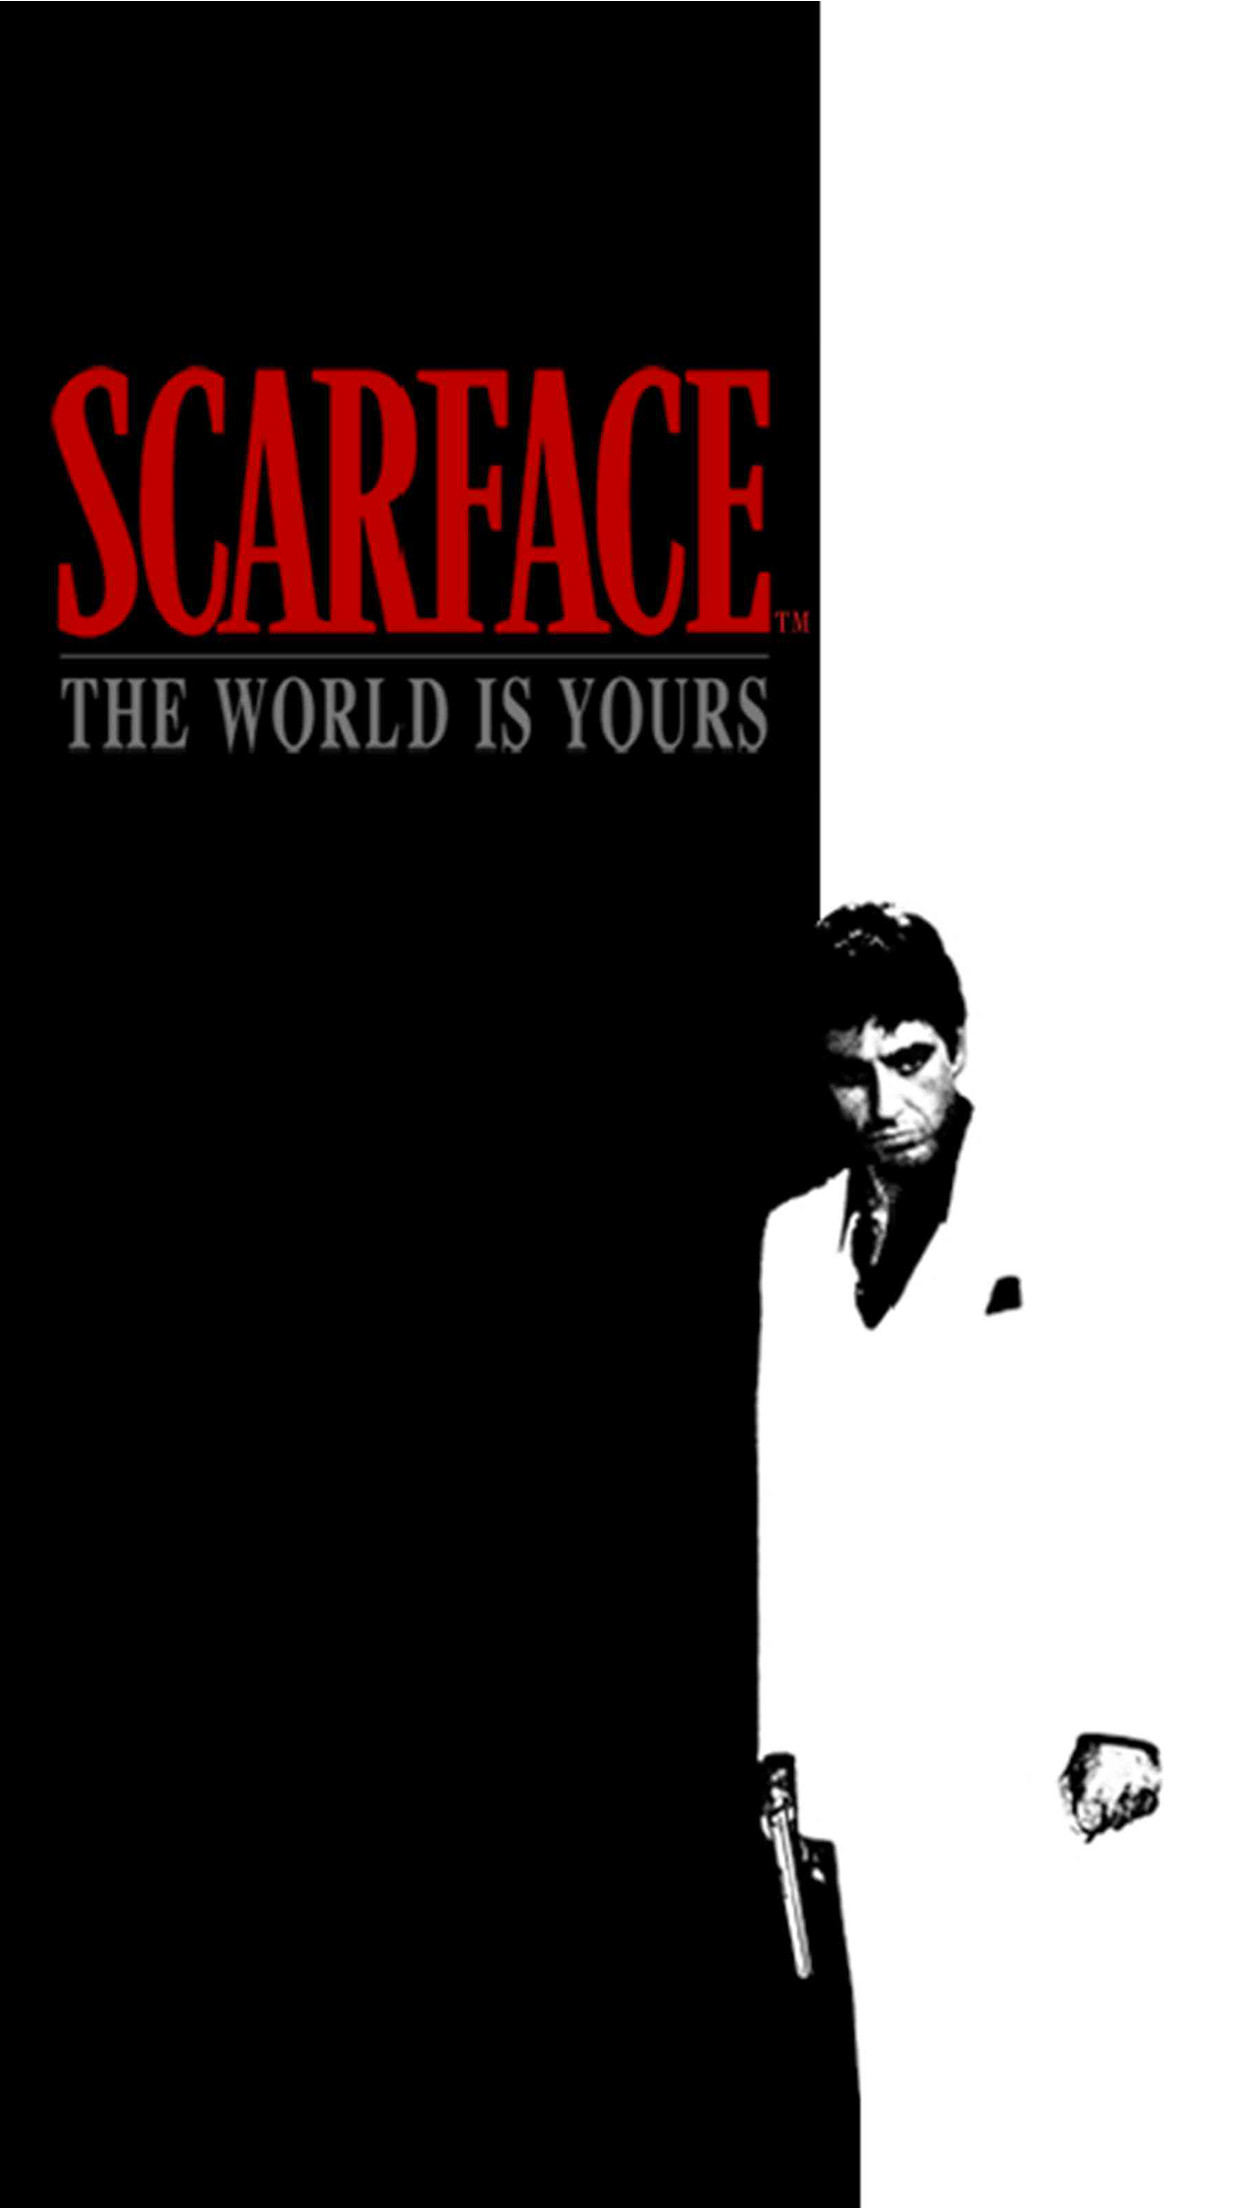 The world is yours wallpaper 72 images - Scarface background ...